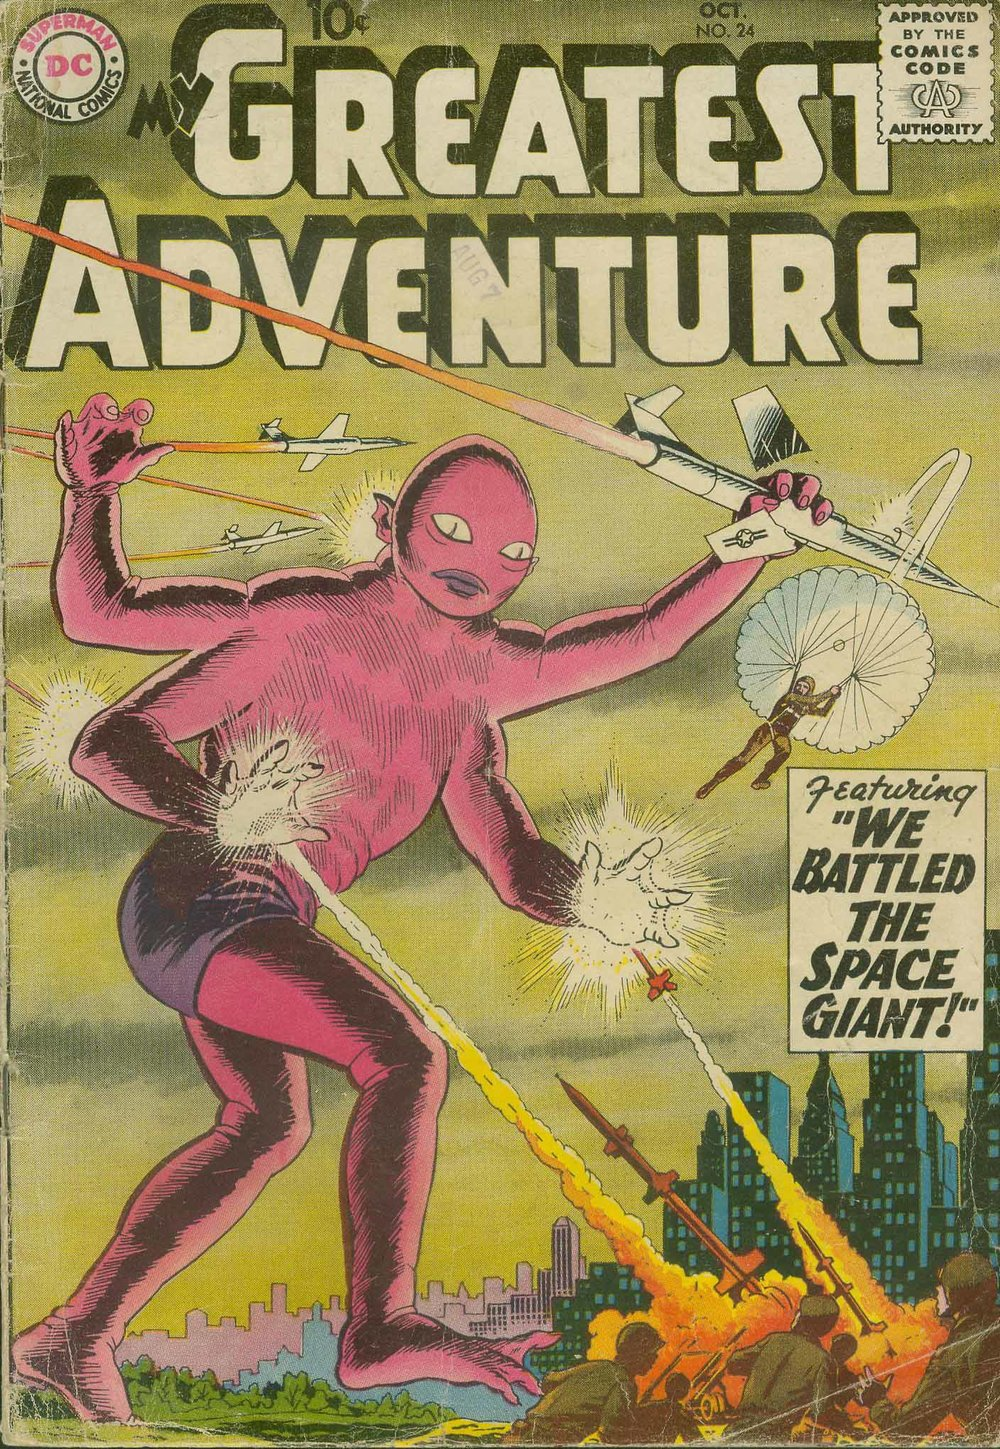 My Greatest Adventure (1955) #24, cover by Nick Cardy.